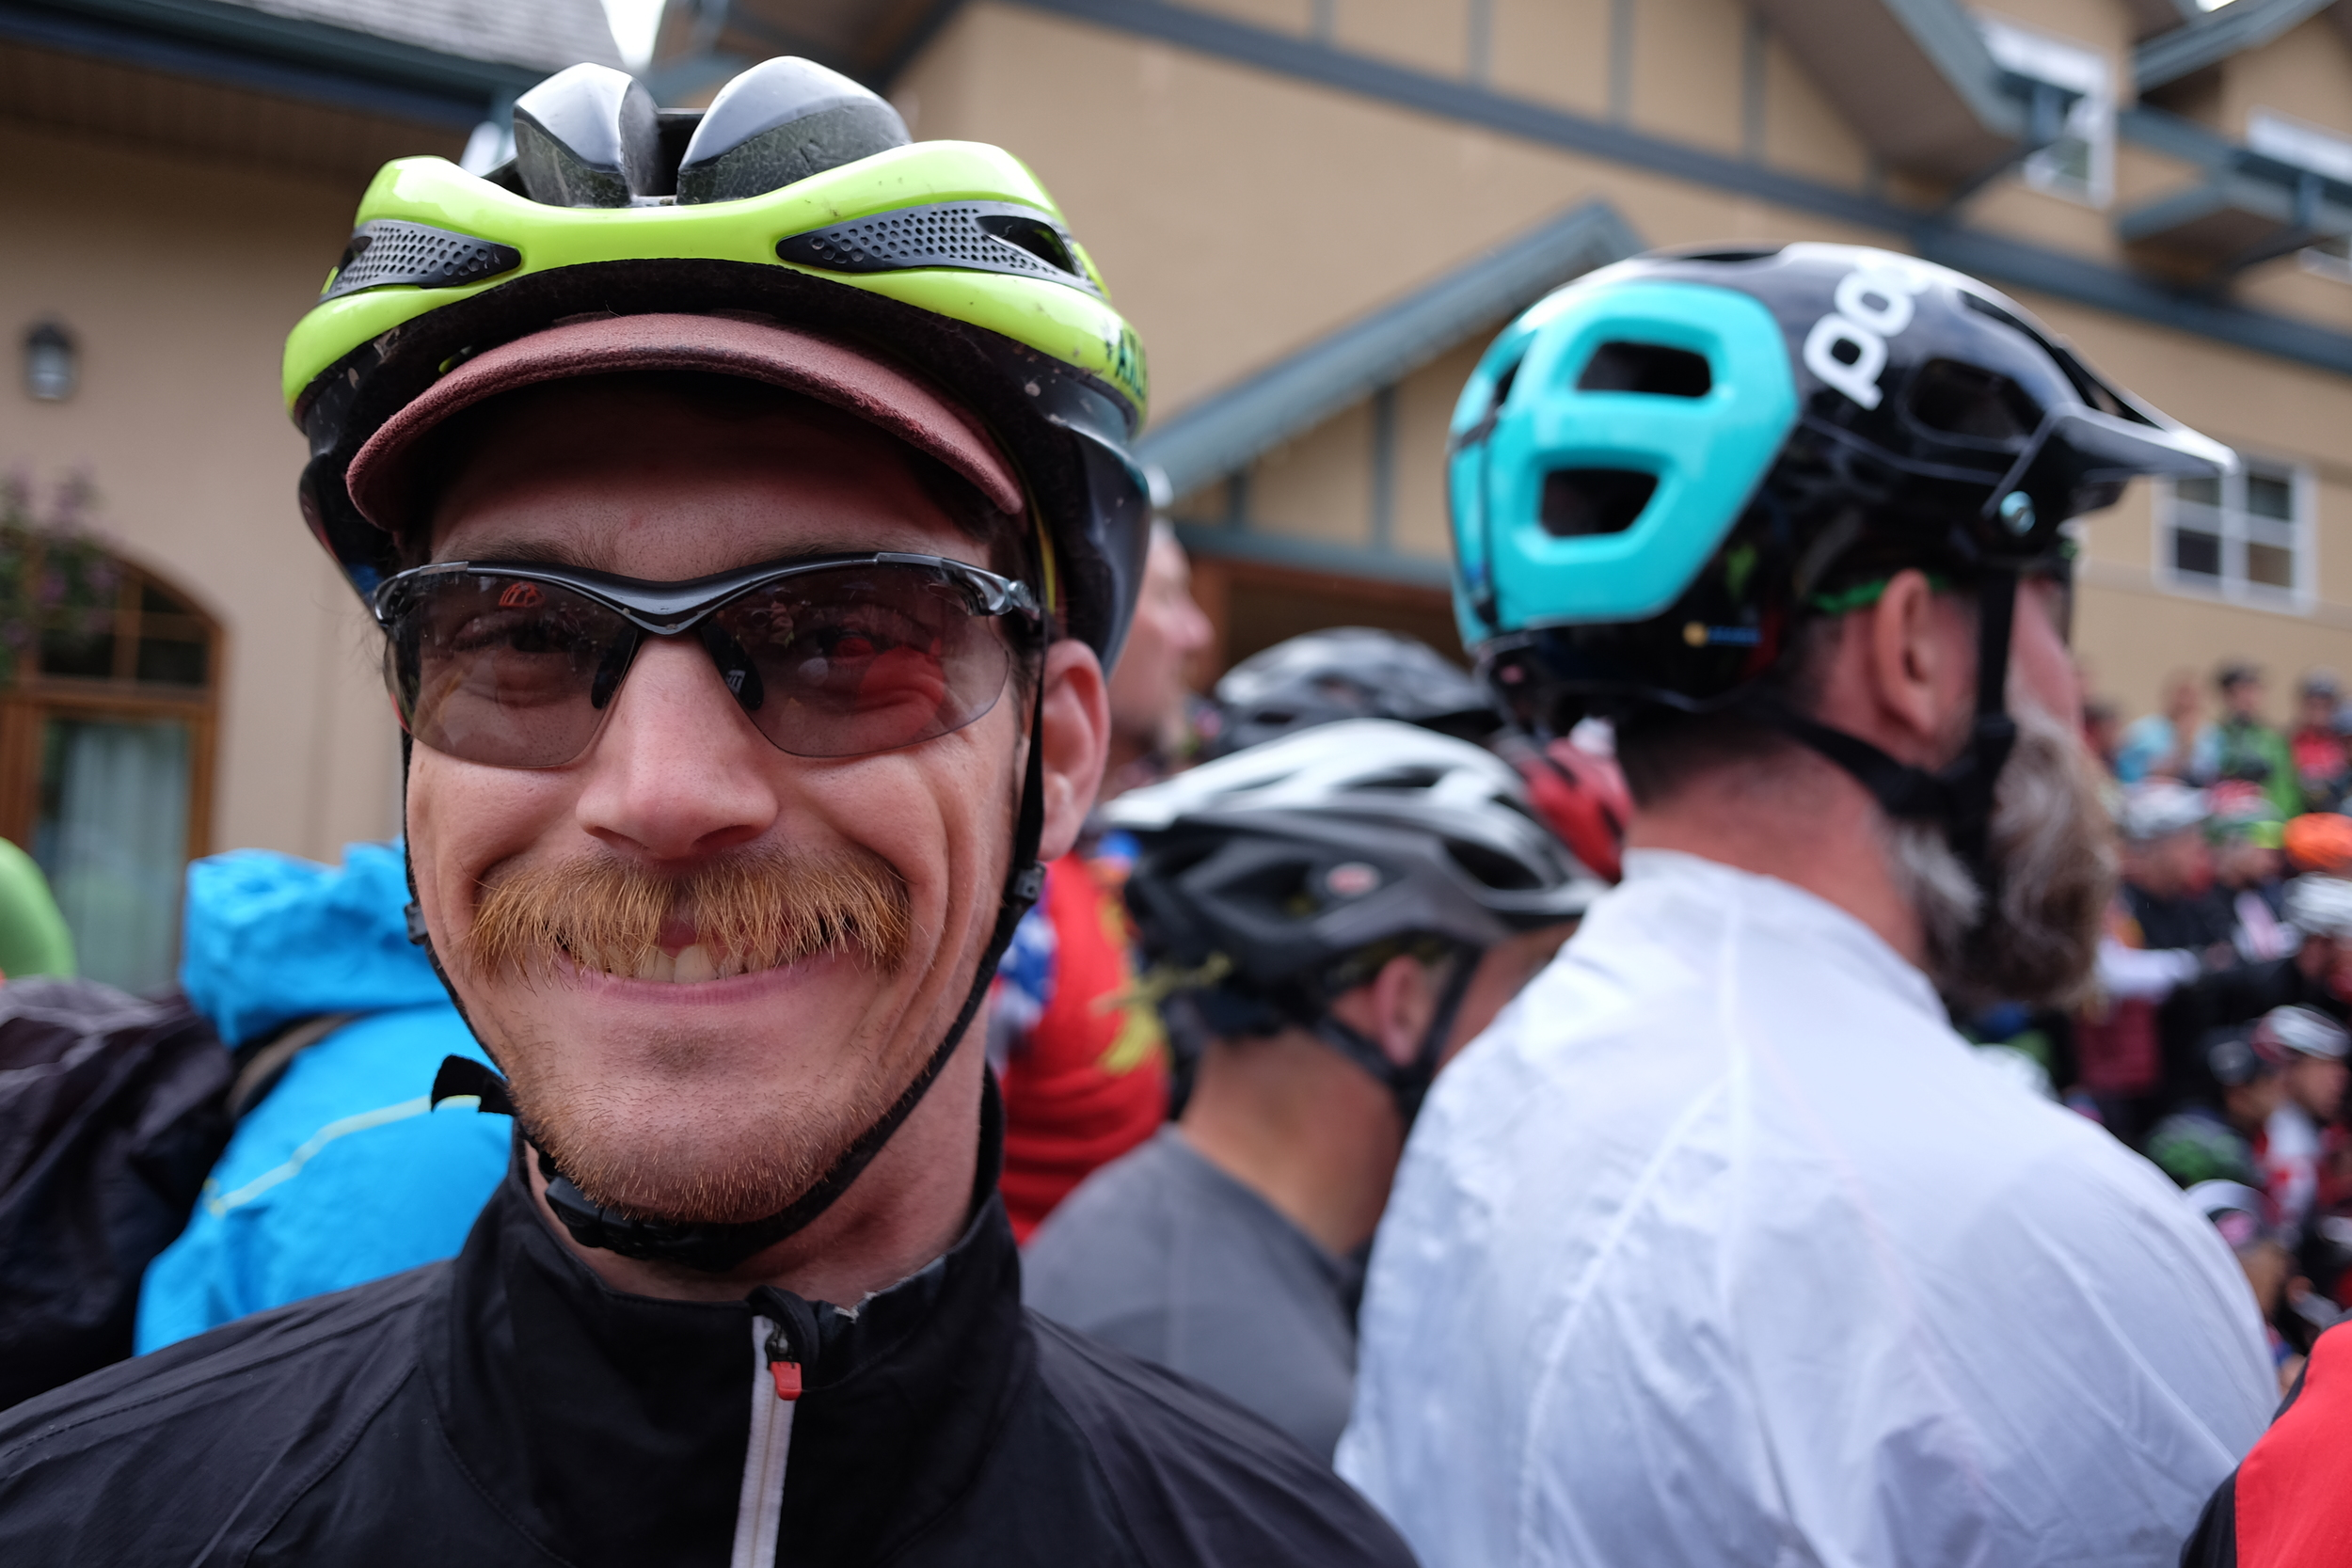 Bailey Newbrey. Chicago, IL native. He finished the race in 19 days and some change. On a single speed Salsa El Mariachi with drops. His mustache only got more manly as the days wore on. Also, he only washed his jersey and bibs once. Rad.